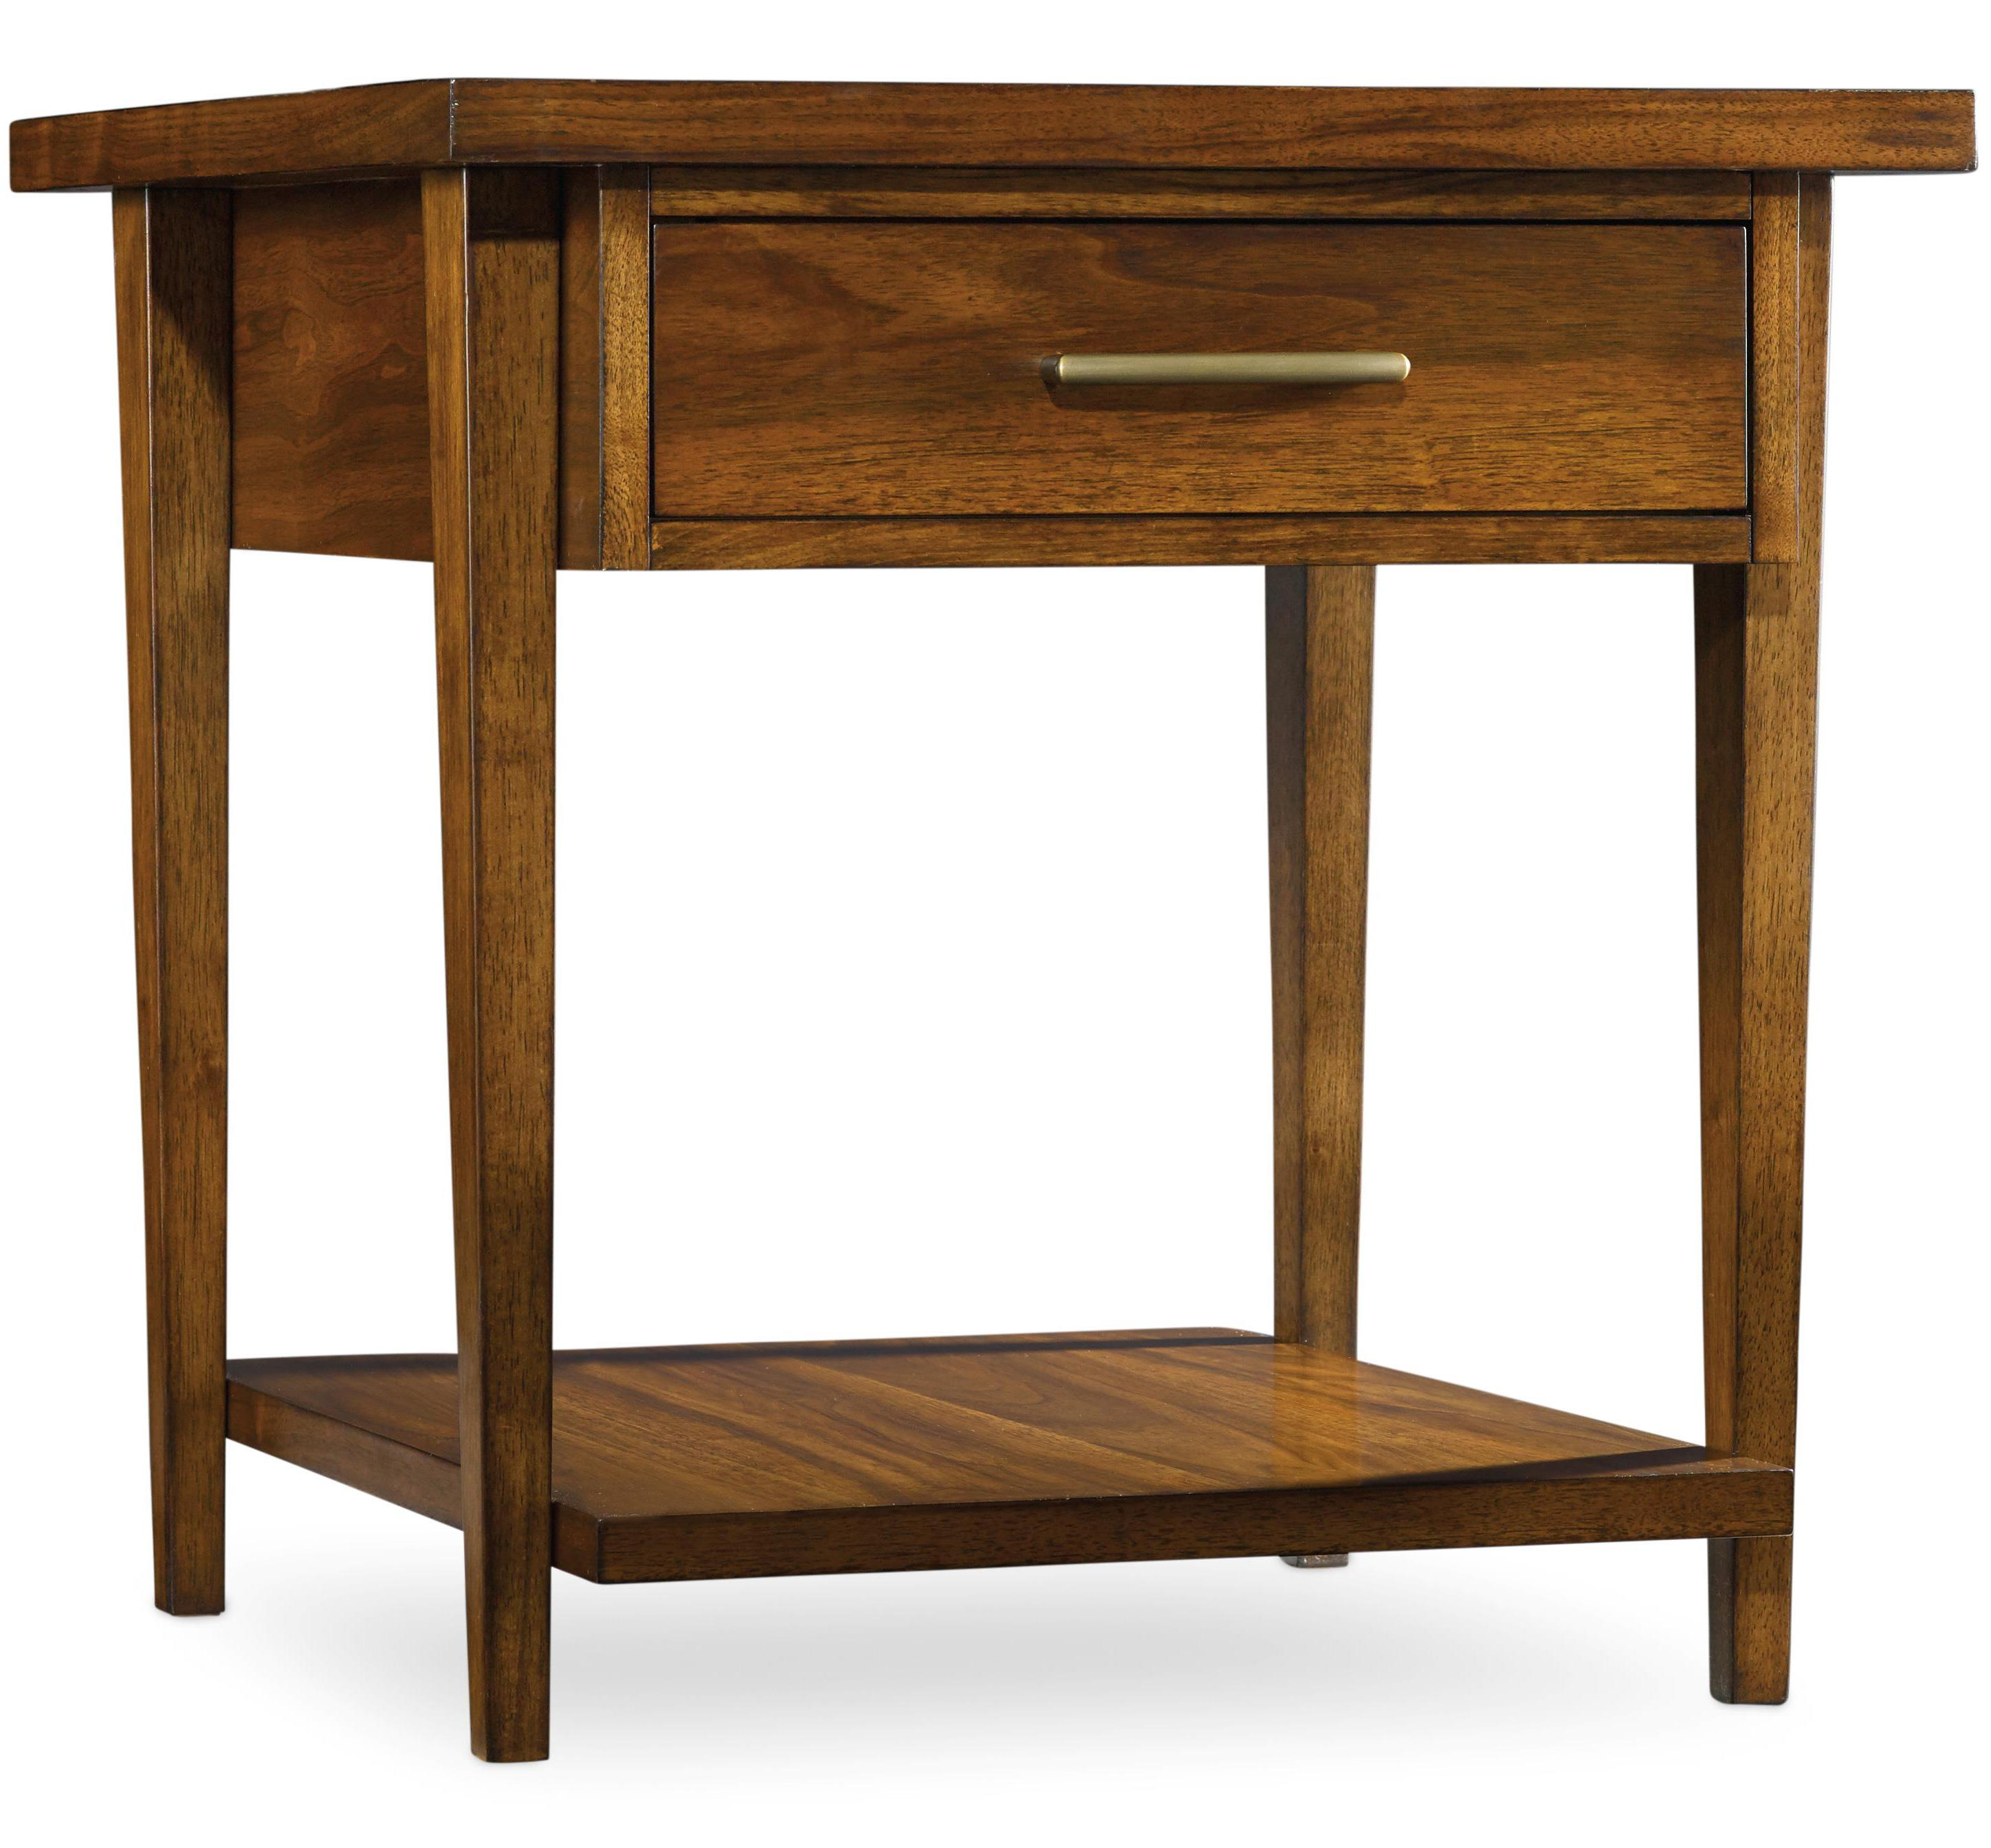 Hooker Furniture Viewpoint   End Table - Item Number: 5328-80113